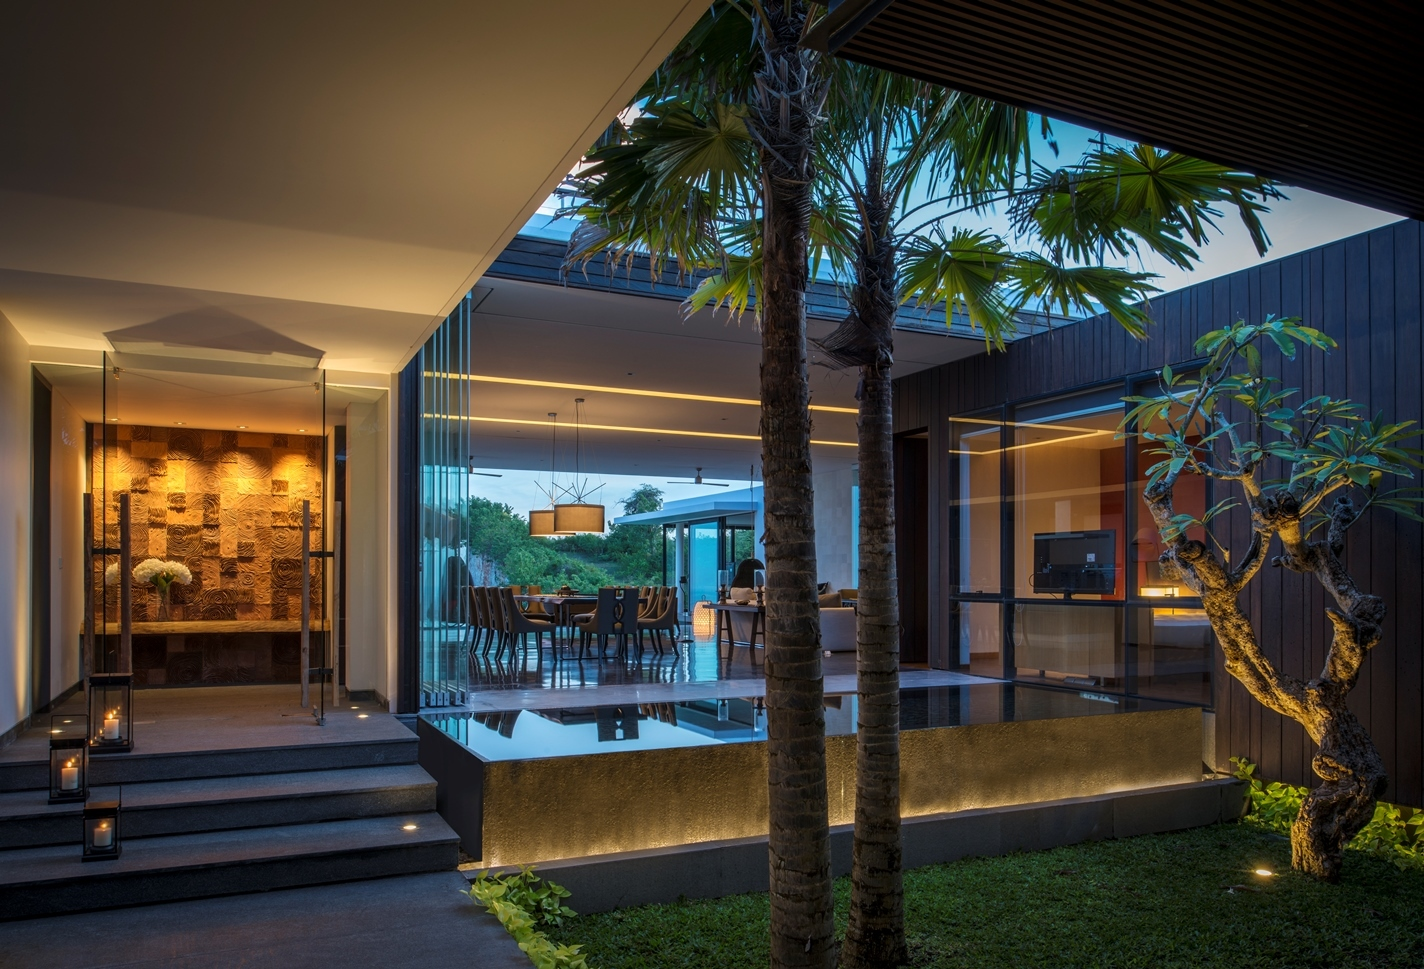 modern tropical home with interior courtyard bali oceanfront villa - Balinese House Designs